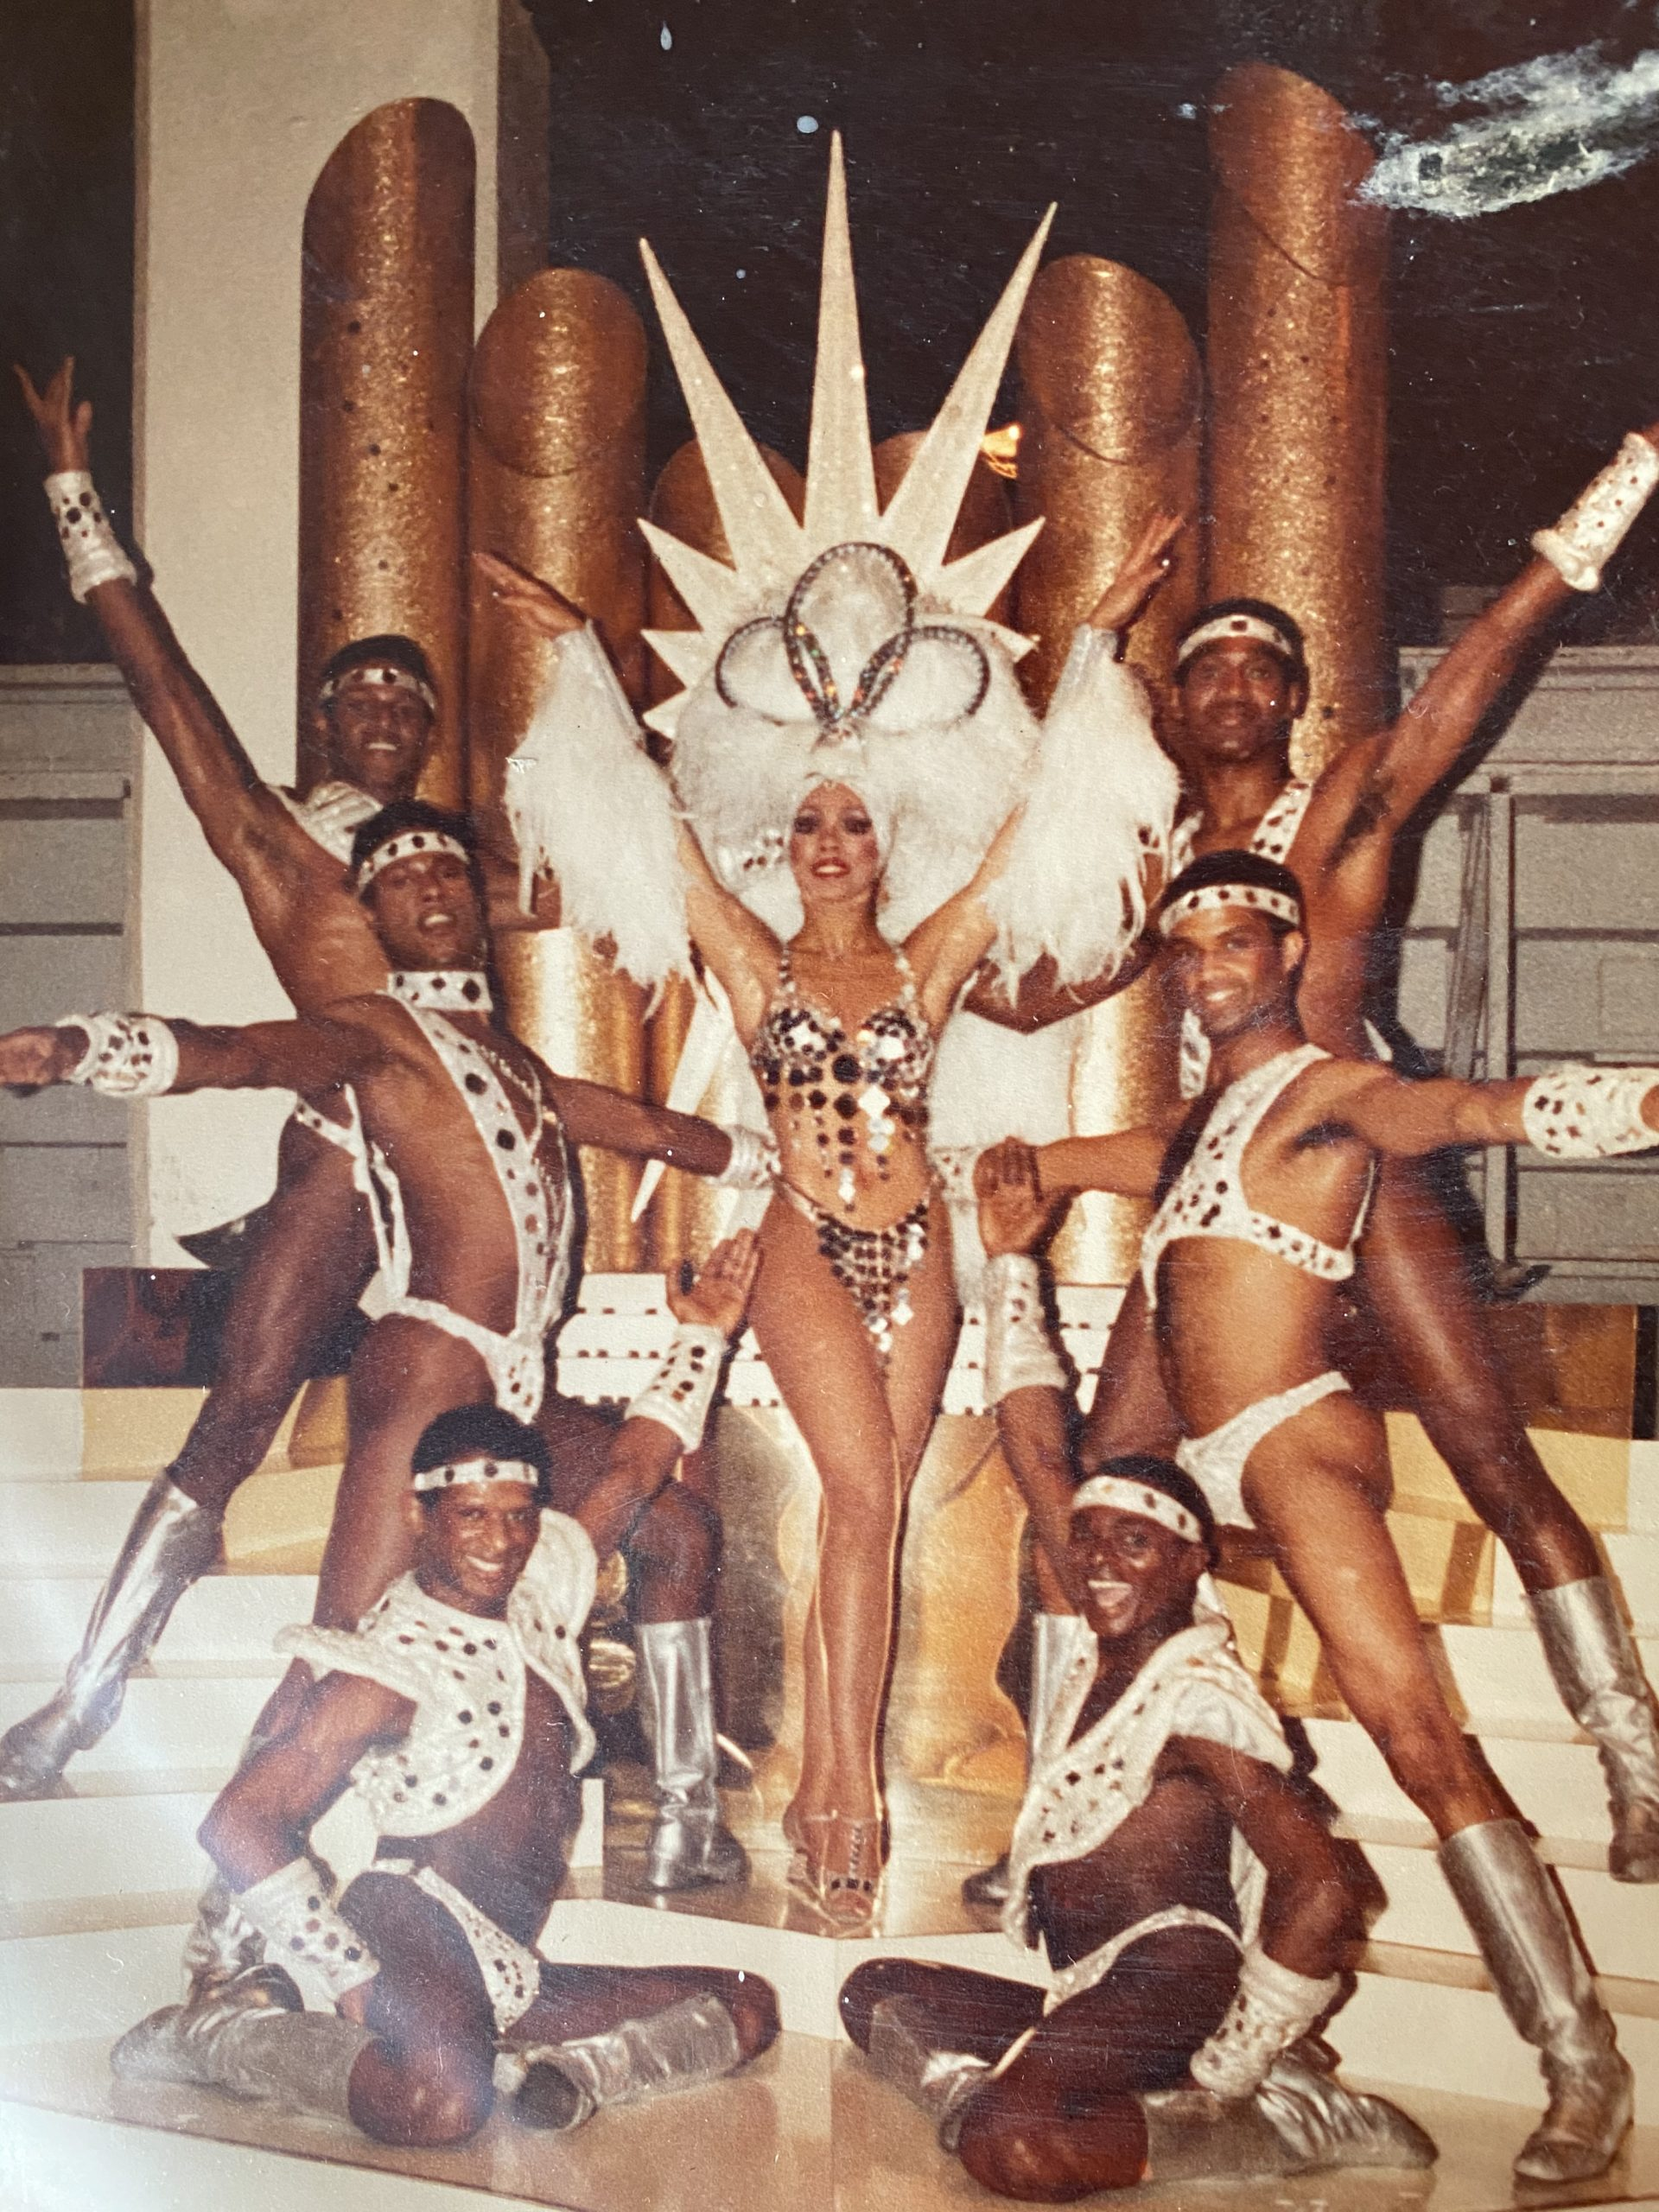 Showgirl's Life Podcast | ep 30 Diversifying the Narrative: stories from dancers of the line formerly known as the Ebony line and beyond part 2, featuring Jakki Ford